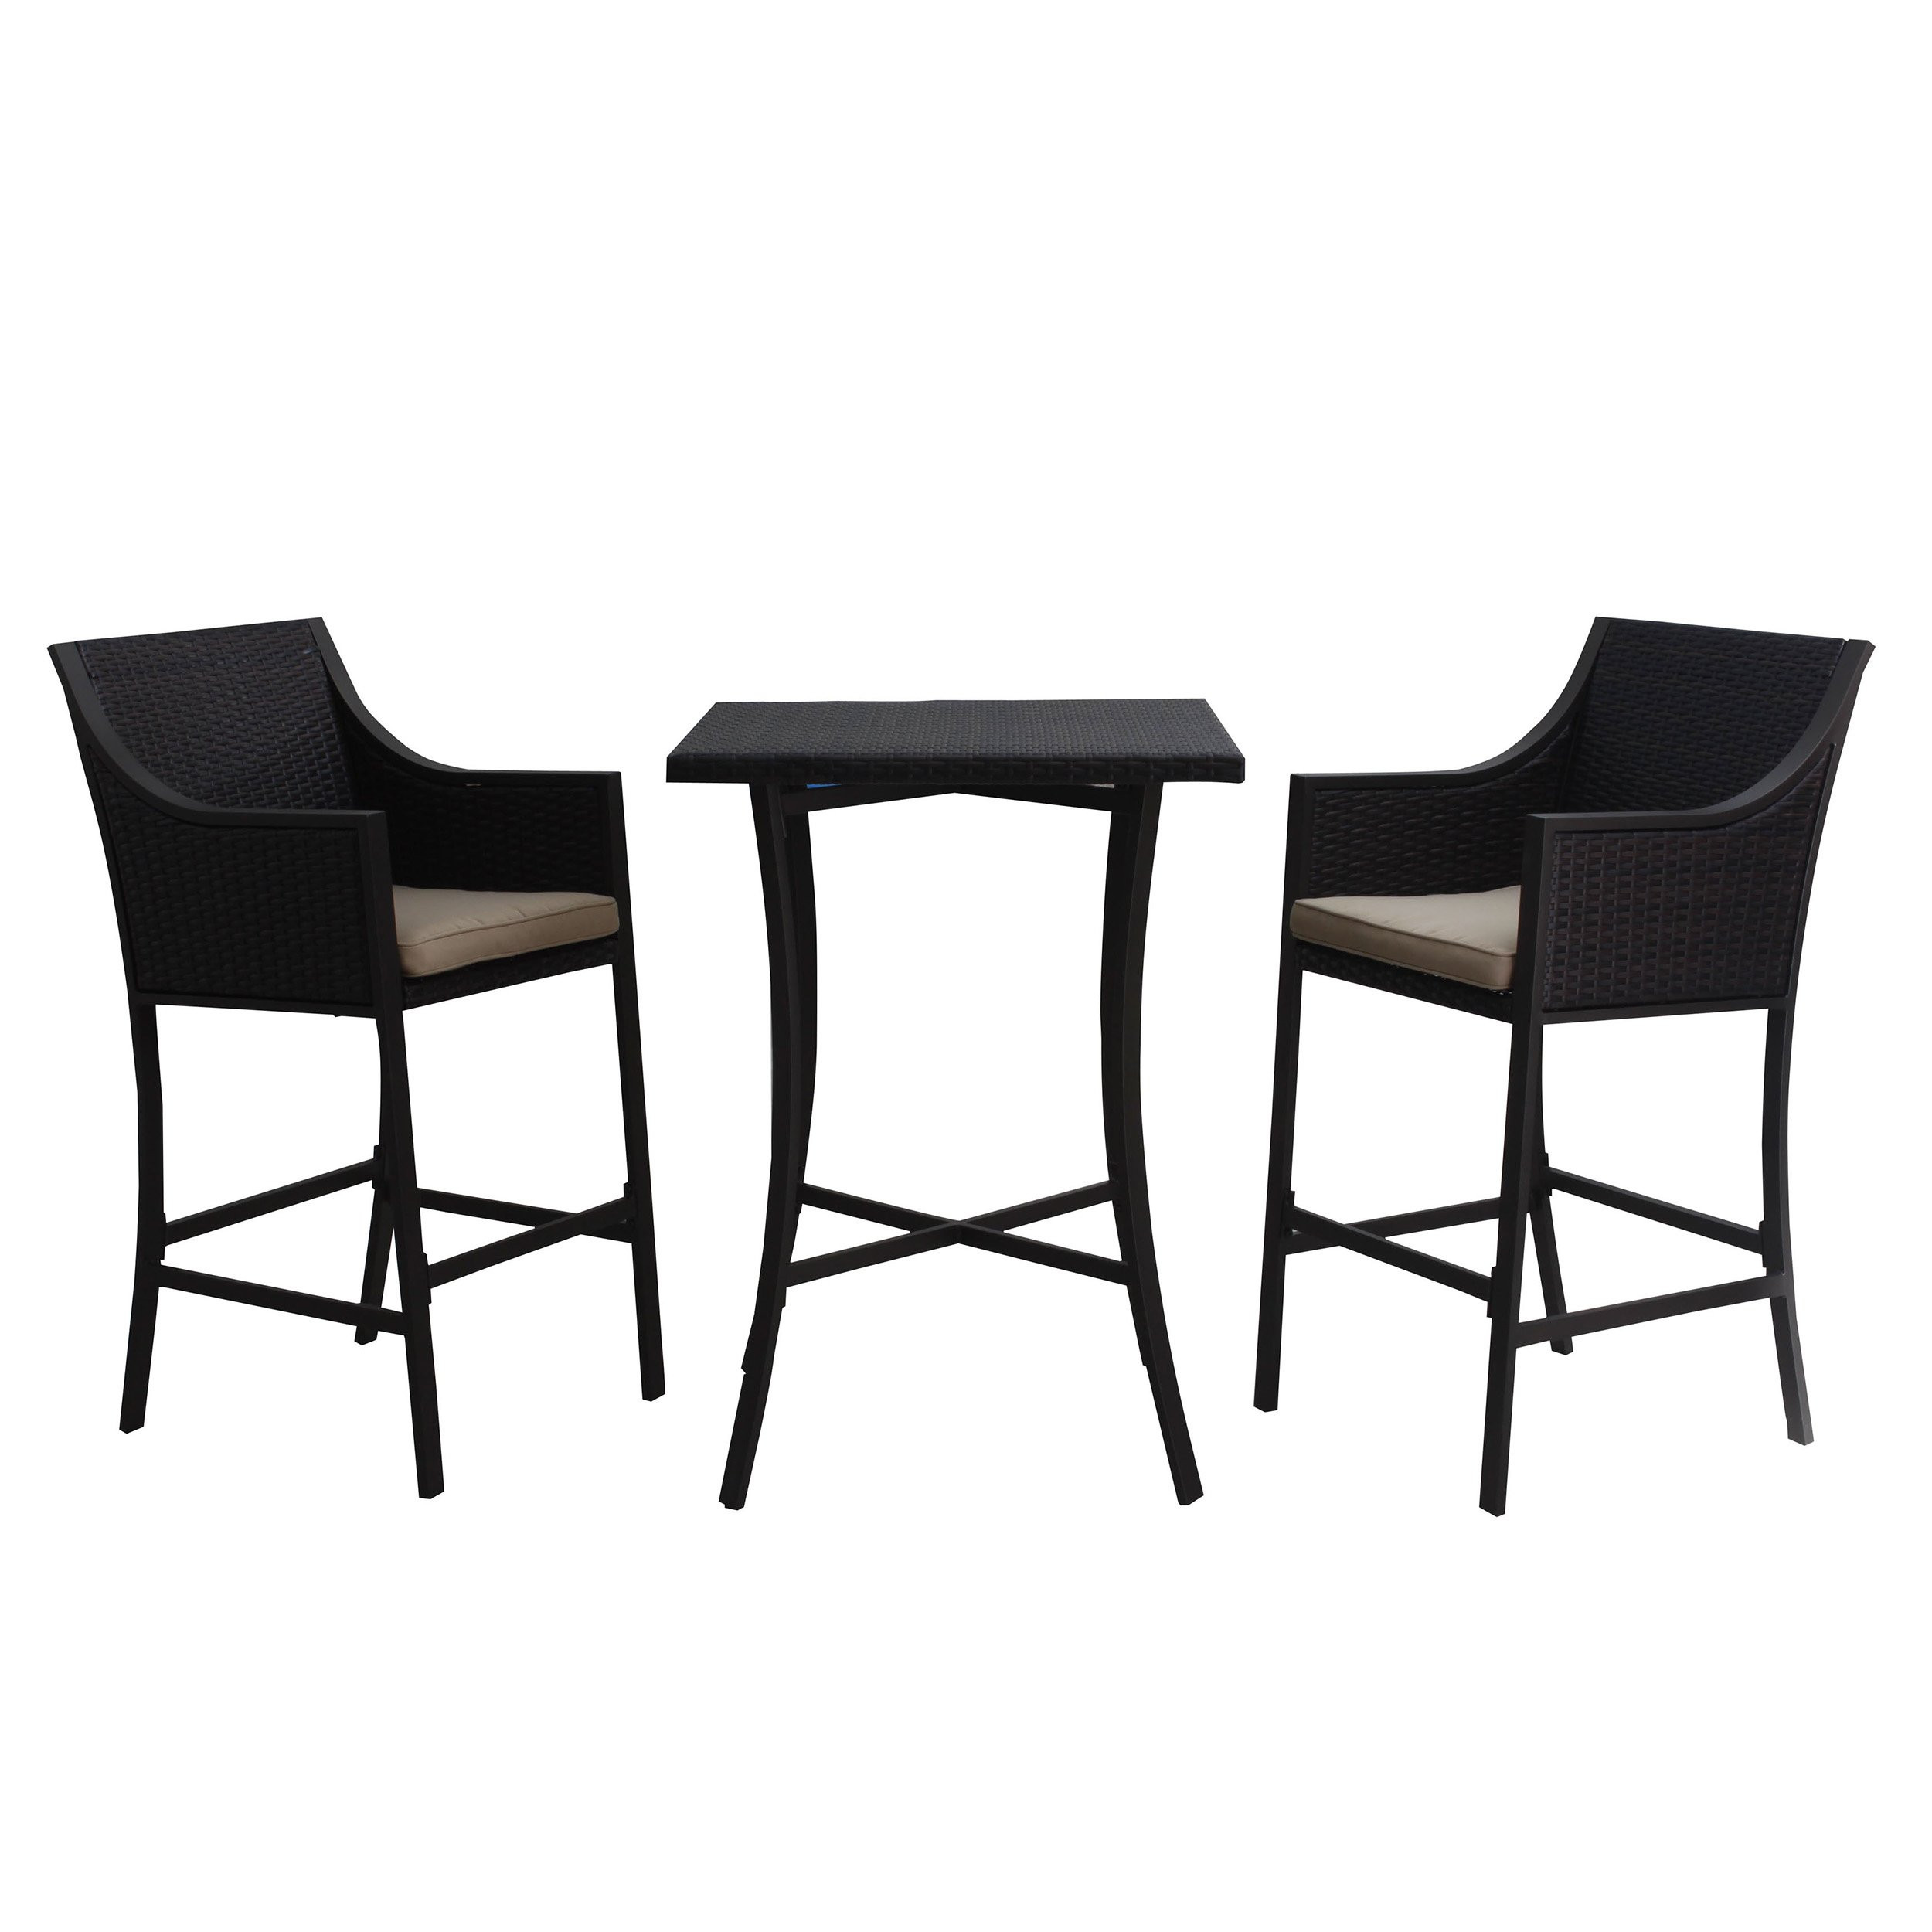 Denise Austin Home Pyra 3 Pc. Multi Brown Outdoor...